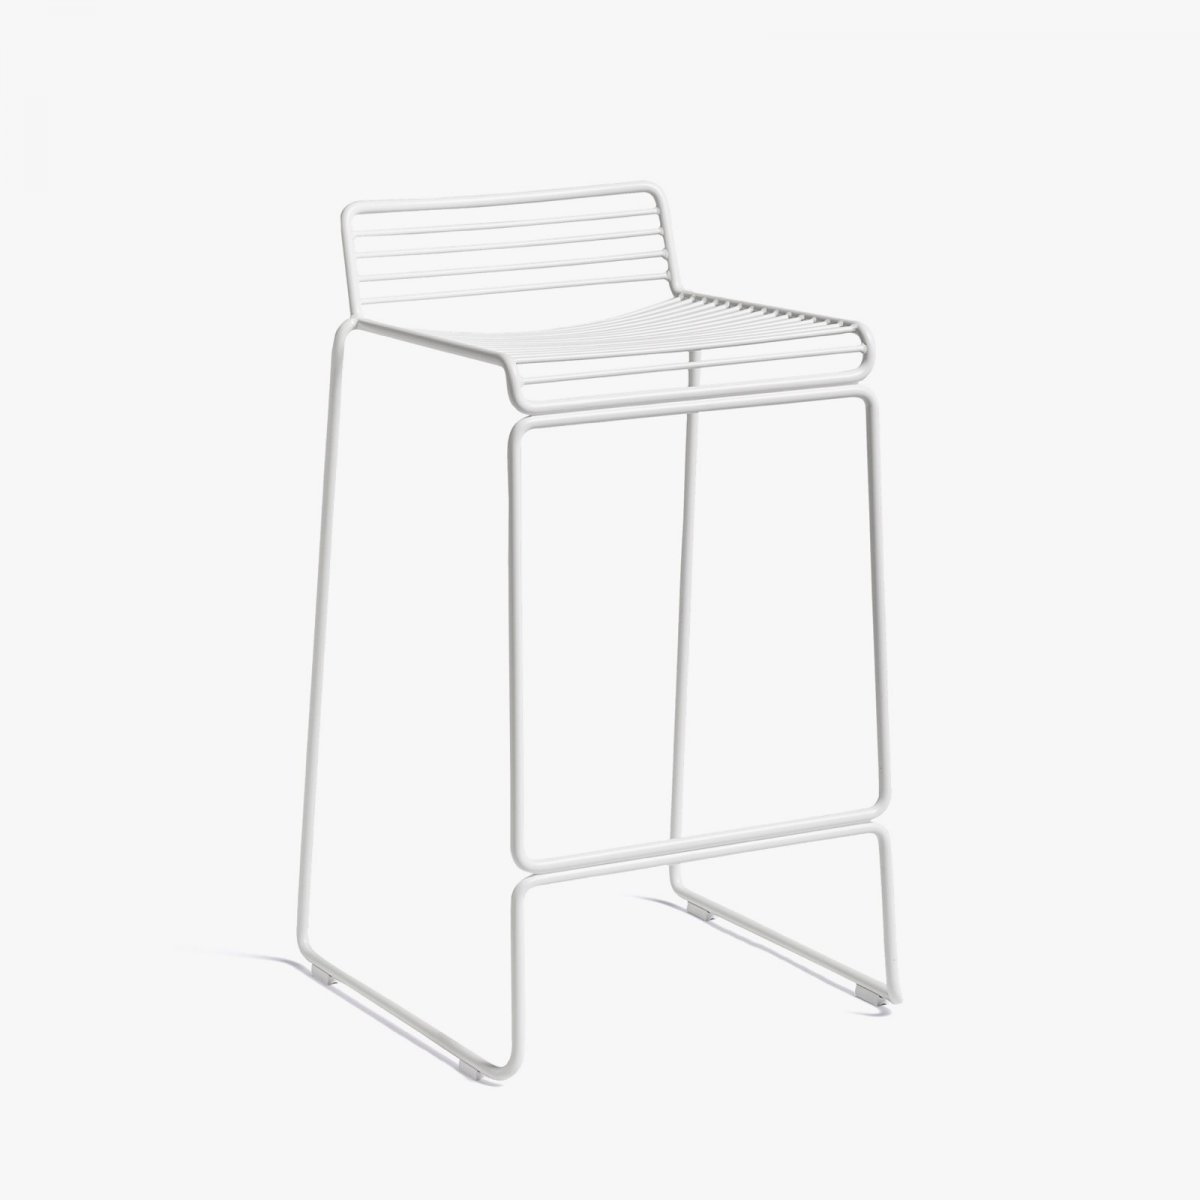 Hee Bar Stool, high, white.